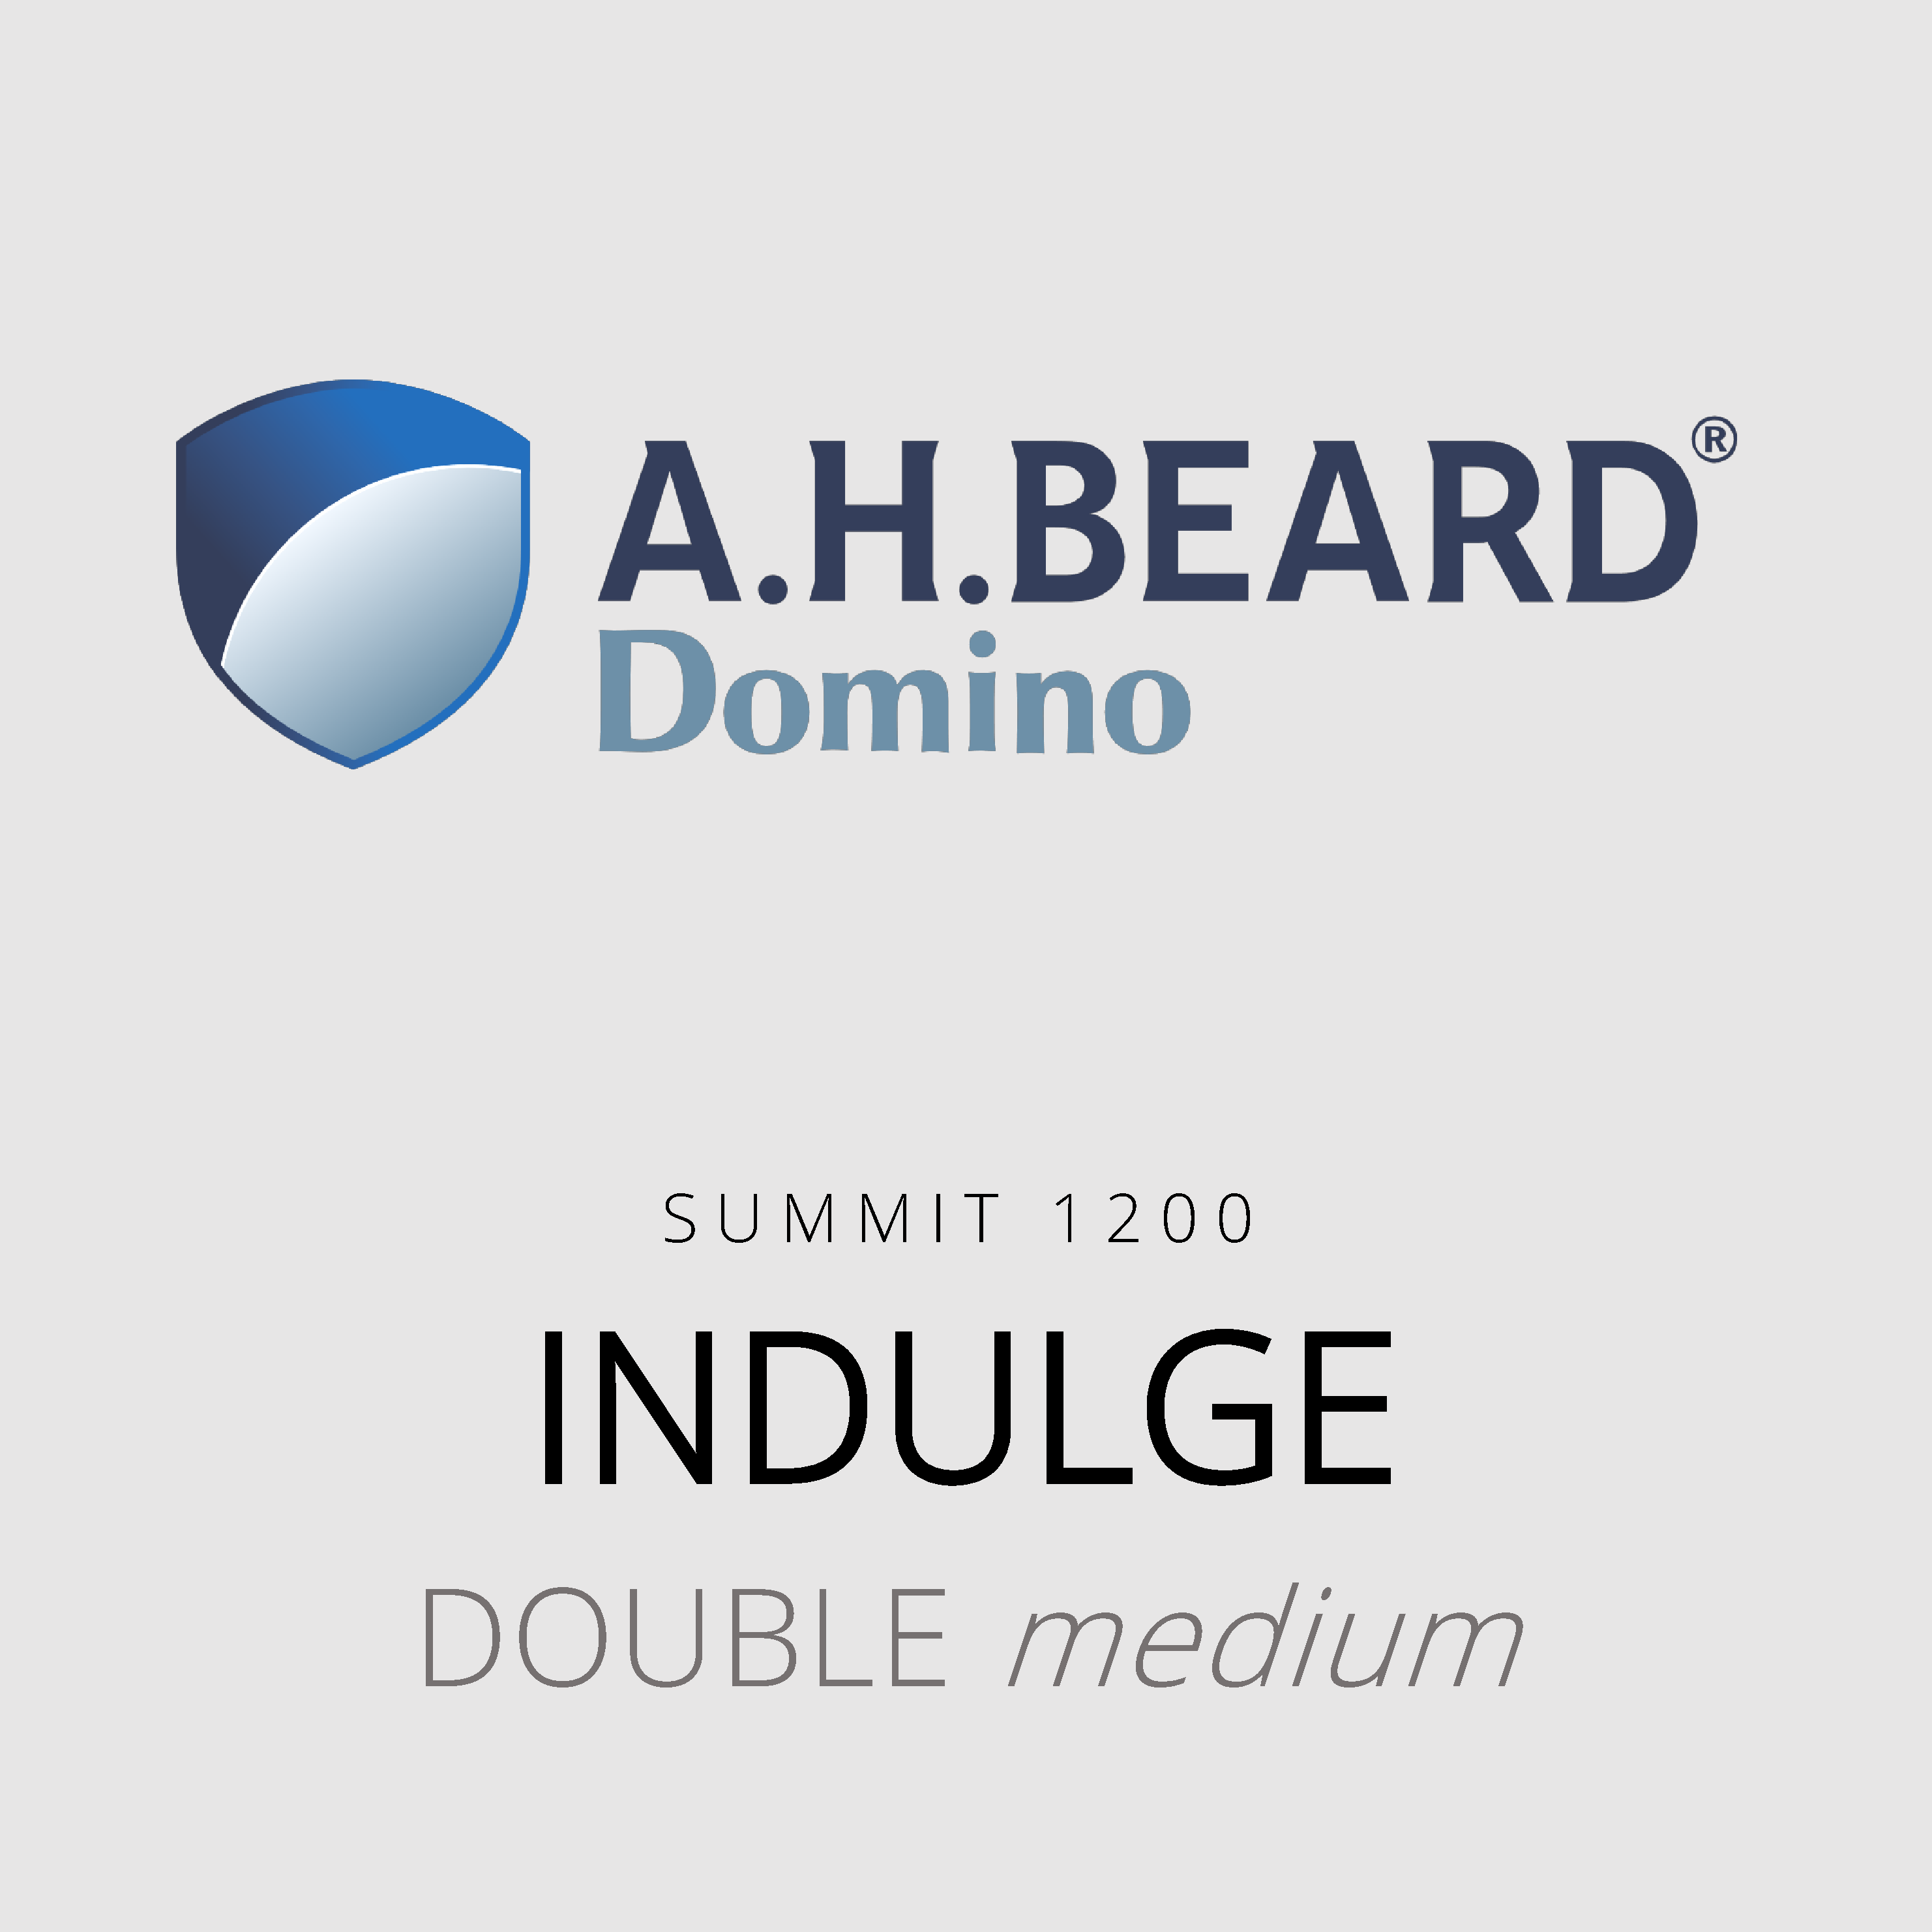 AH Beard Domino – Indulge – Summit 1200 – Double Medium Mattress